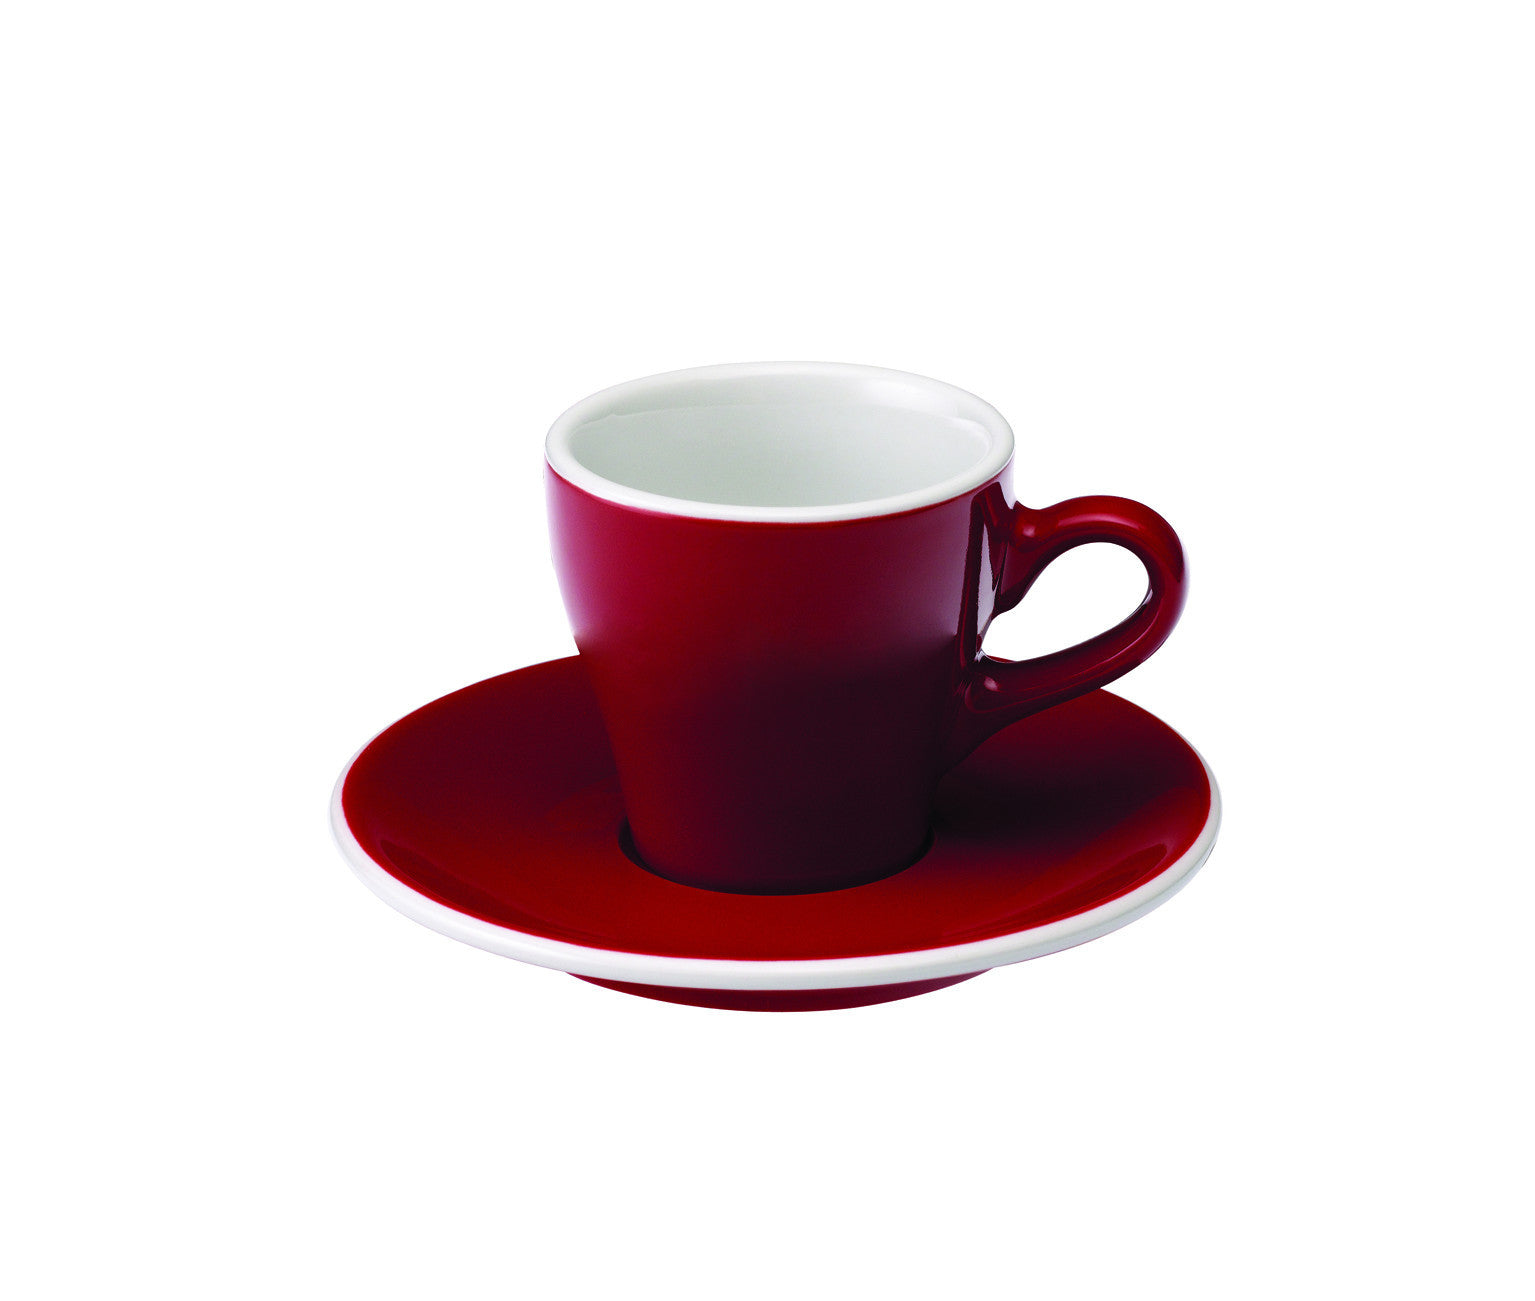 loveramics matchbox espresso cups Cups & saucers cookware it has held up to grandchildren climbing all over it and using the footboard as a racetrack for matchbox chrome accented platform.